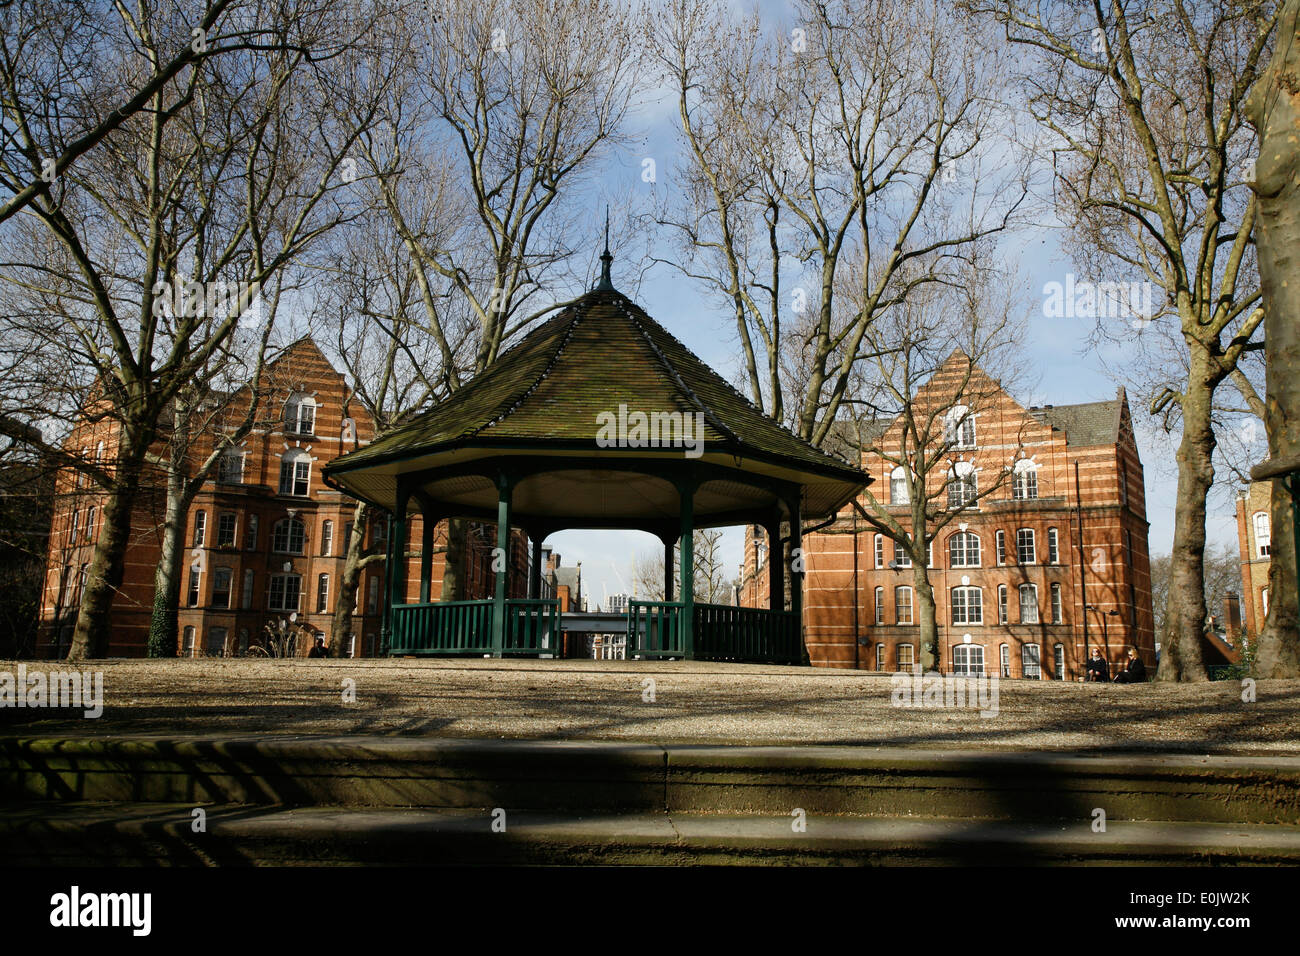 Dans les jardins limitrophes Arnold Circus, Shoreditch, London, UK Photo Stock